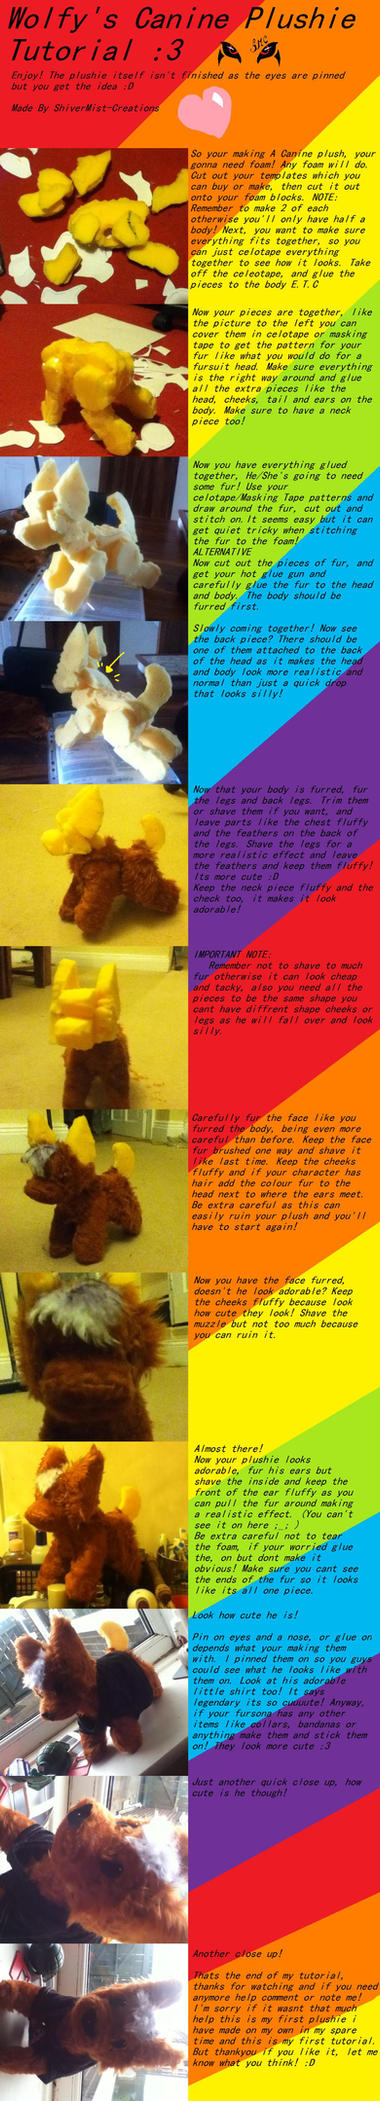 CANINE PLUSHIE TUTORIAL by CLIDEthewolf